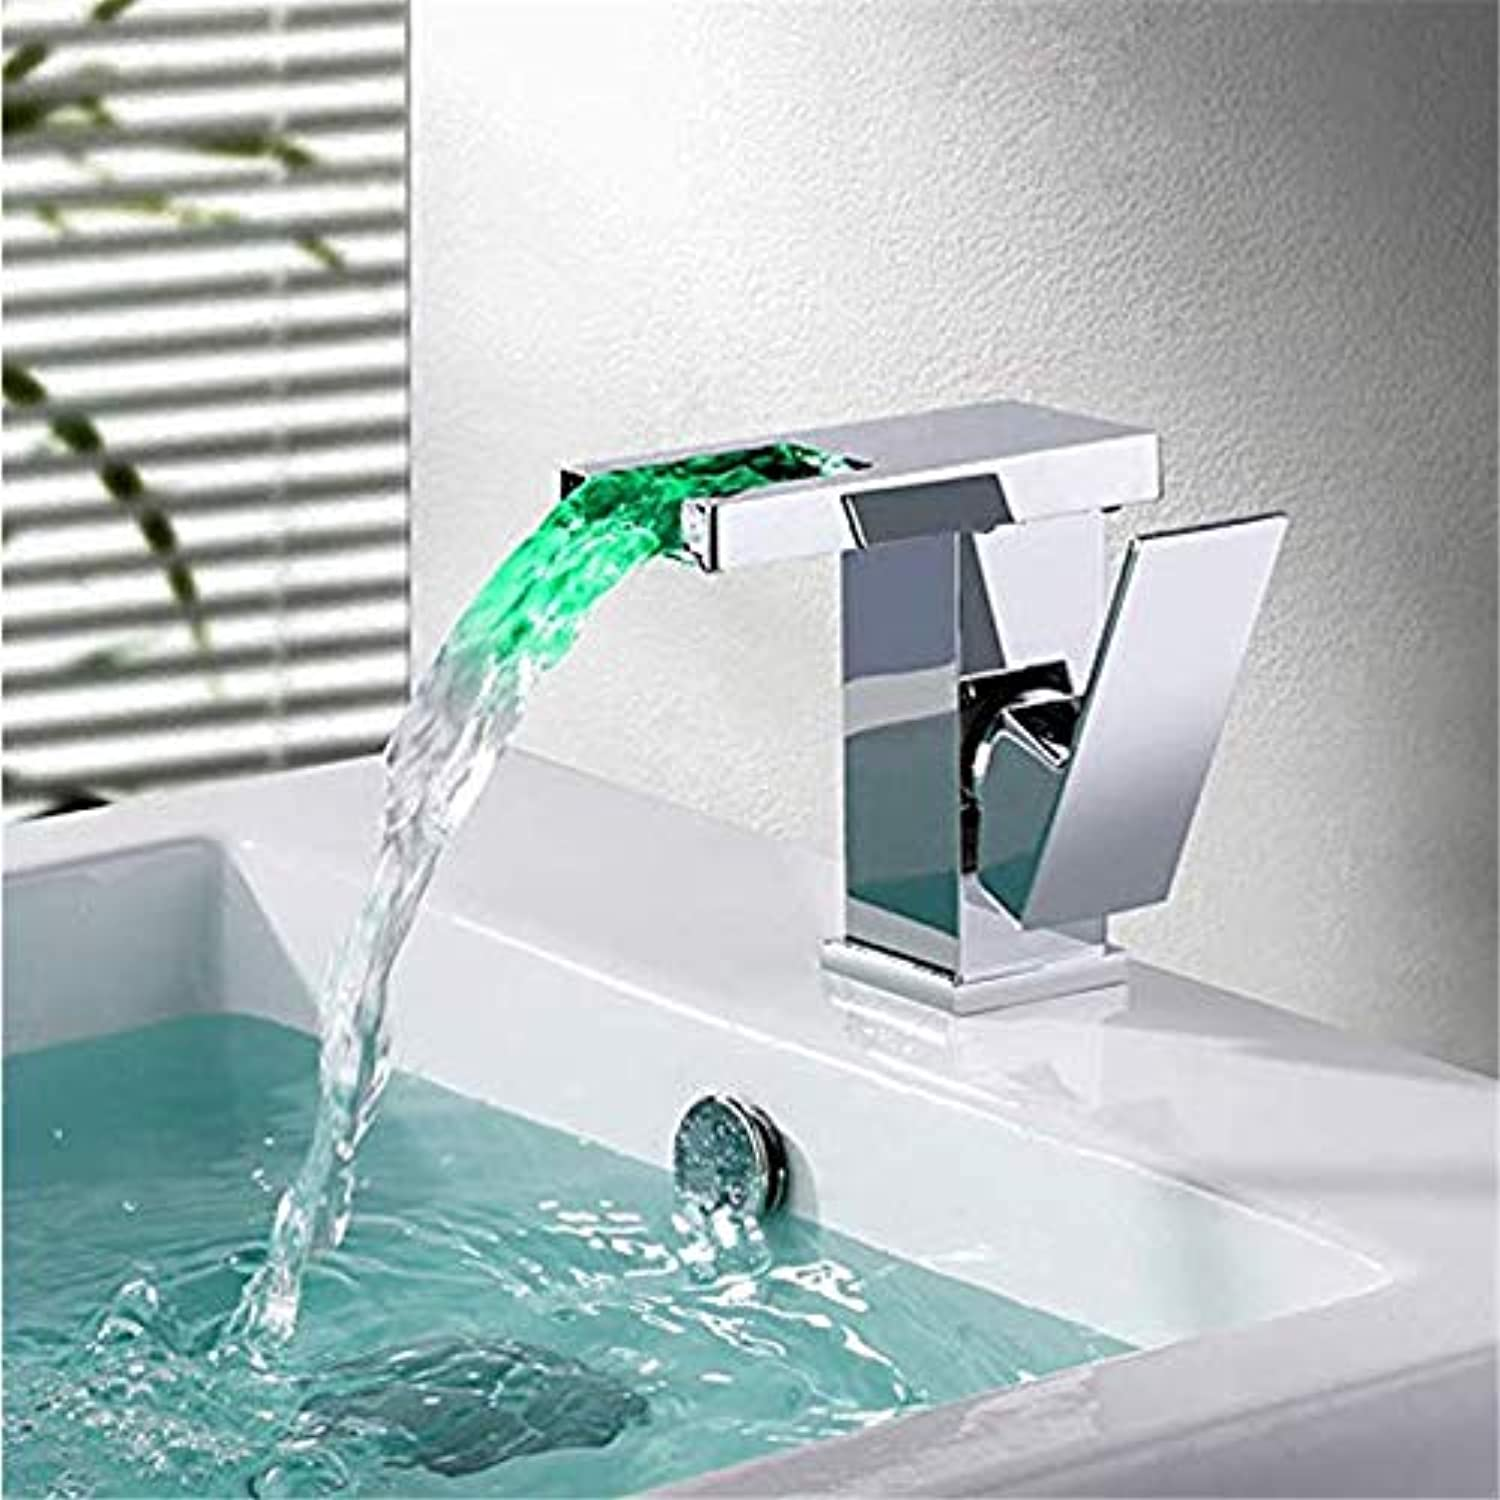 LED hydroelectric Faucet for Bathroom Faucet Chrome Faucet Mixing Faucet for Bathroom Sink